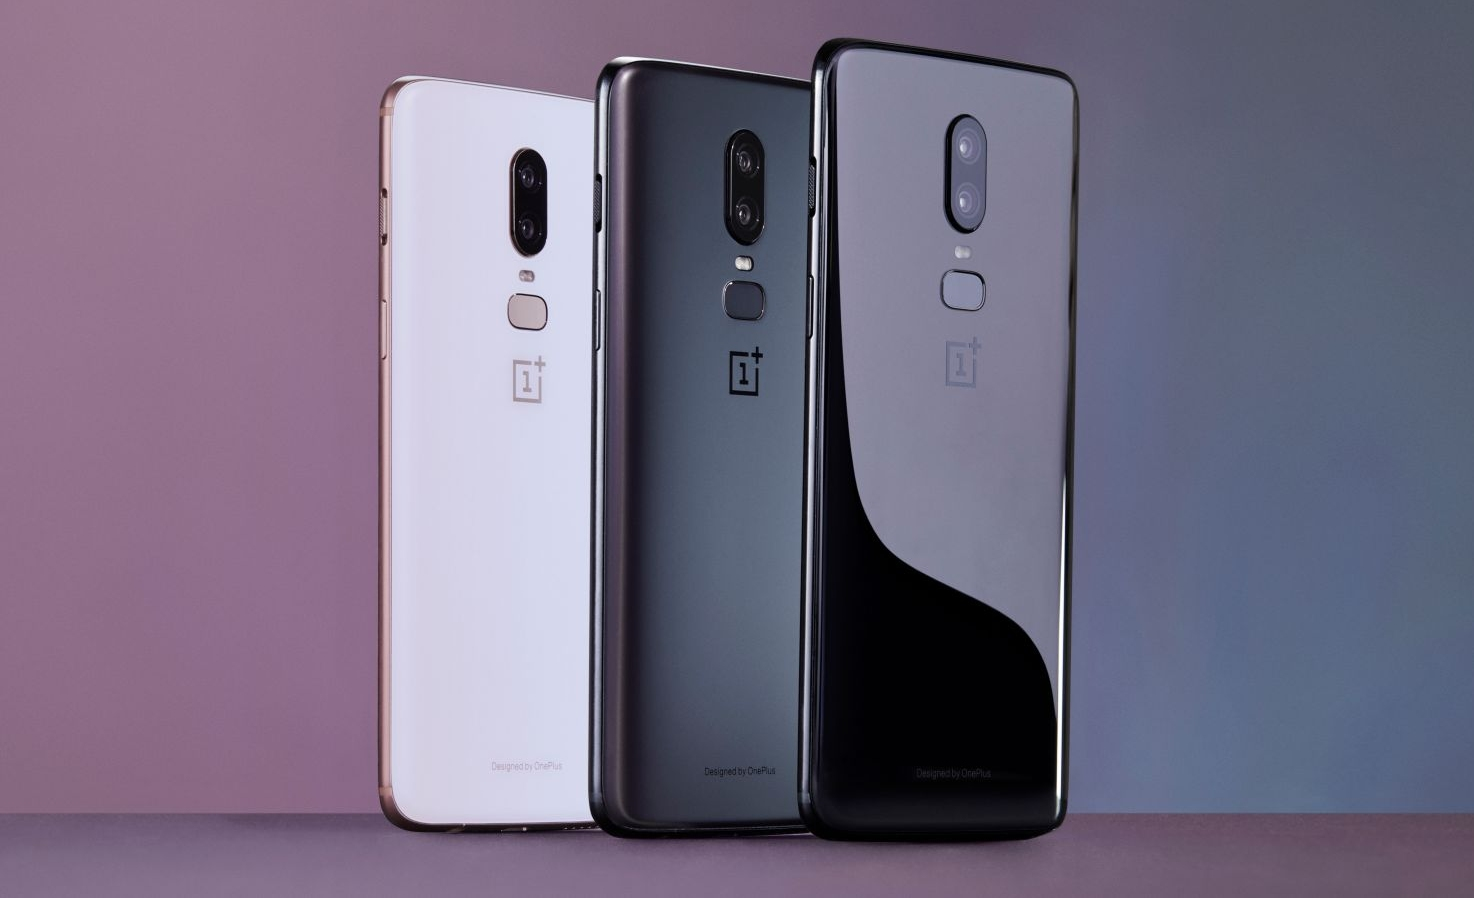 OnePlus 6 Sales Reached 1 Million Units Within 22 Days of Launch